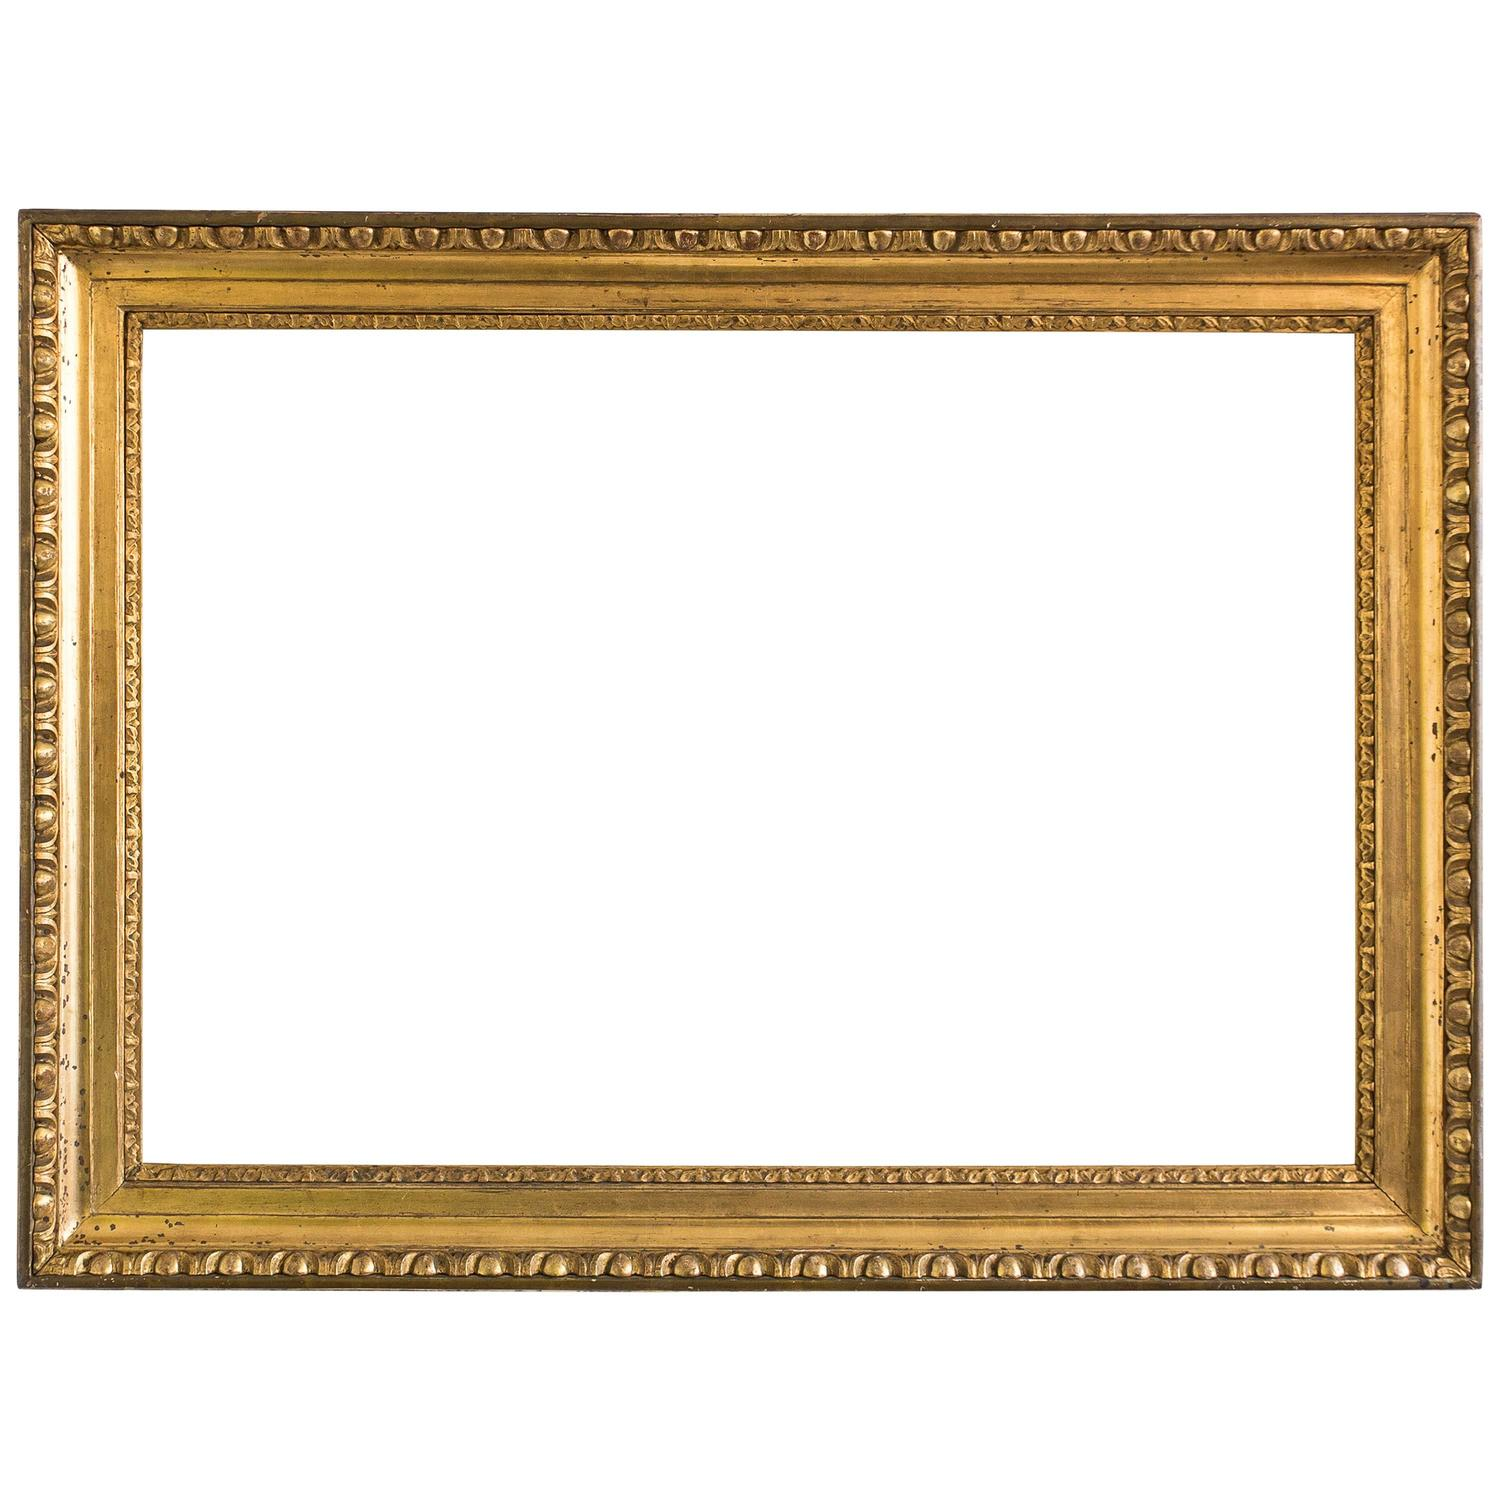 beautiful large golden biedermeier bullseye frame circa 1825 for sale at 1stdibs